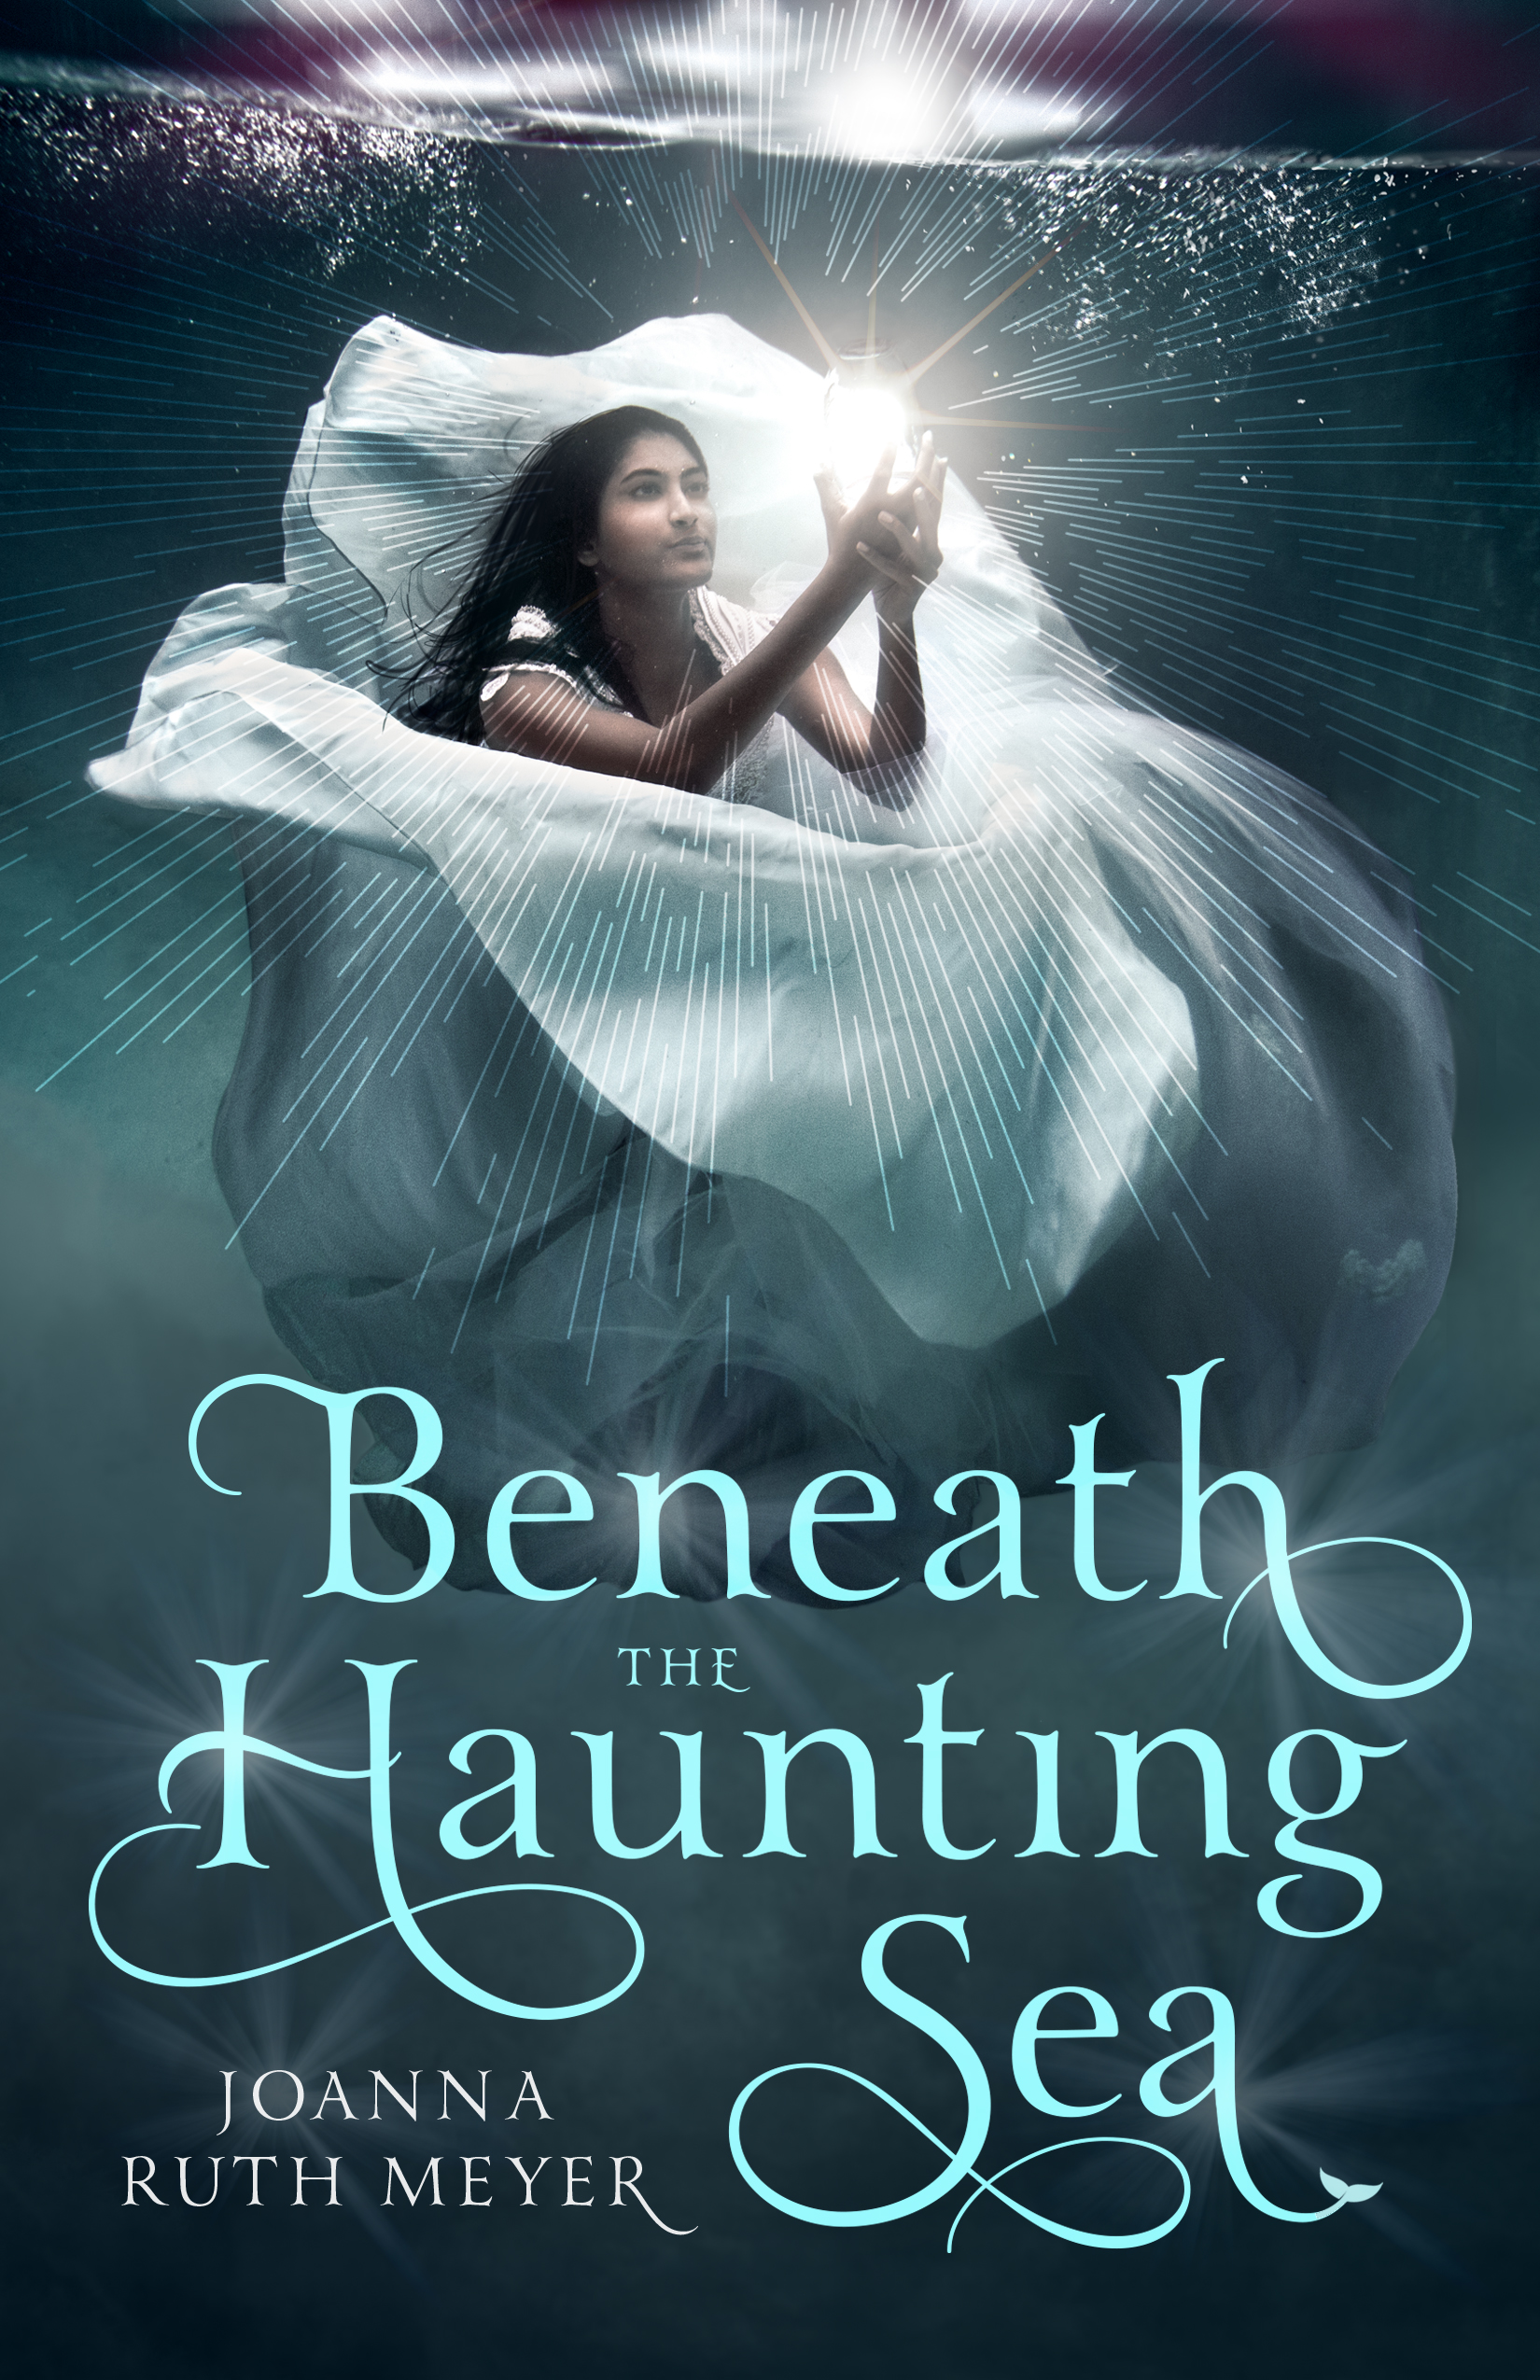 Book Cover for Beneath the Haunting Sea by Author Joanna Ruth Meyer